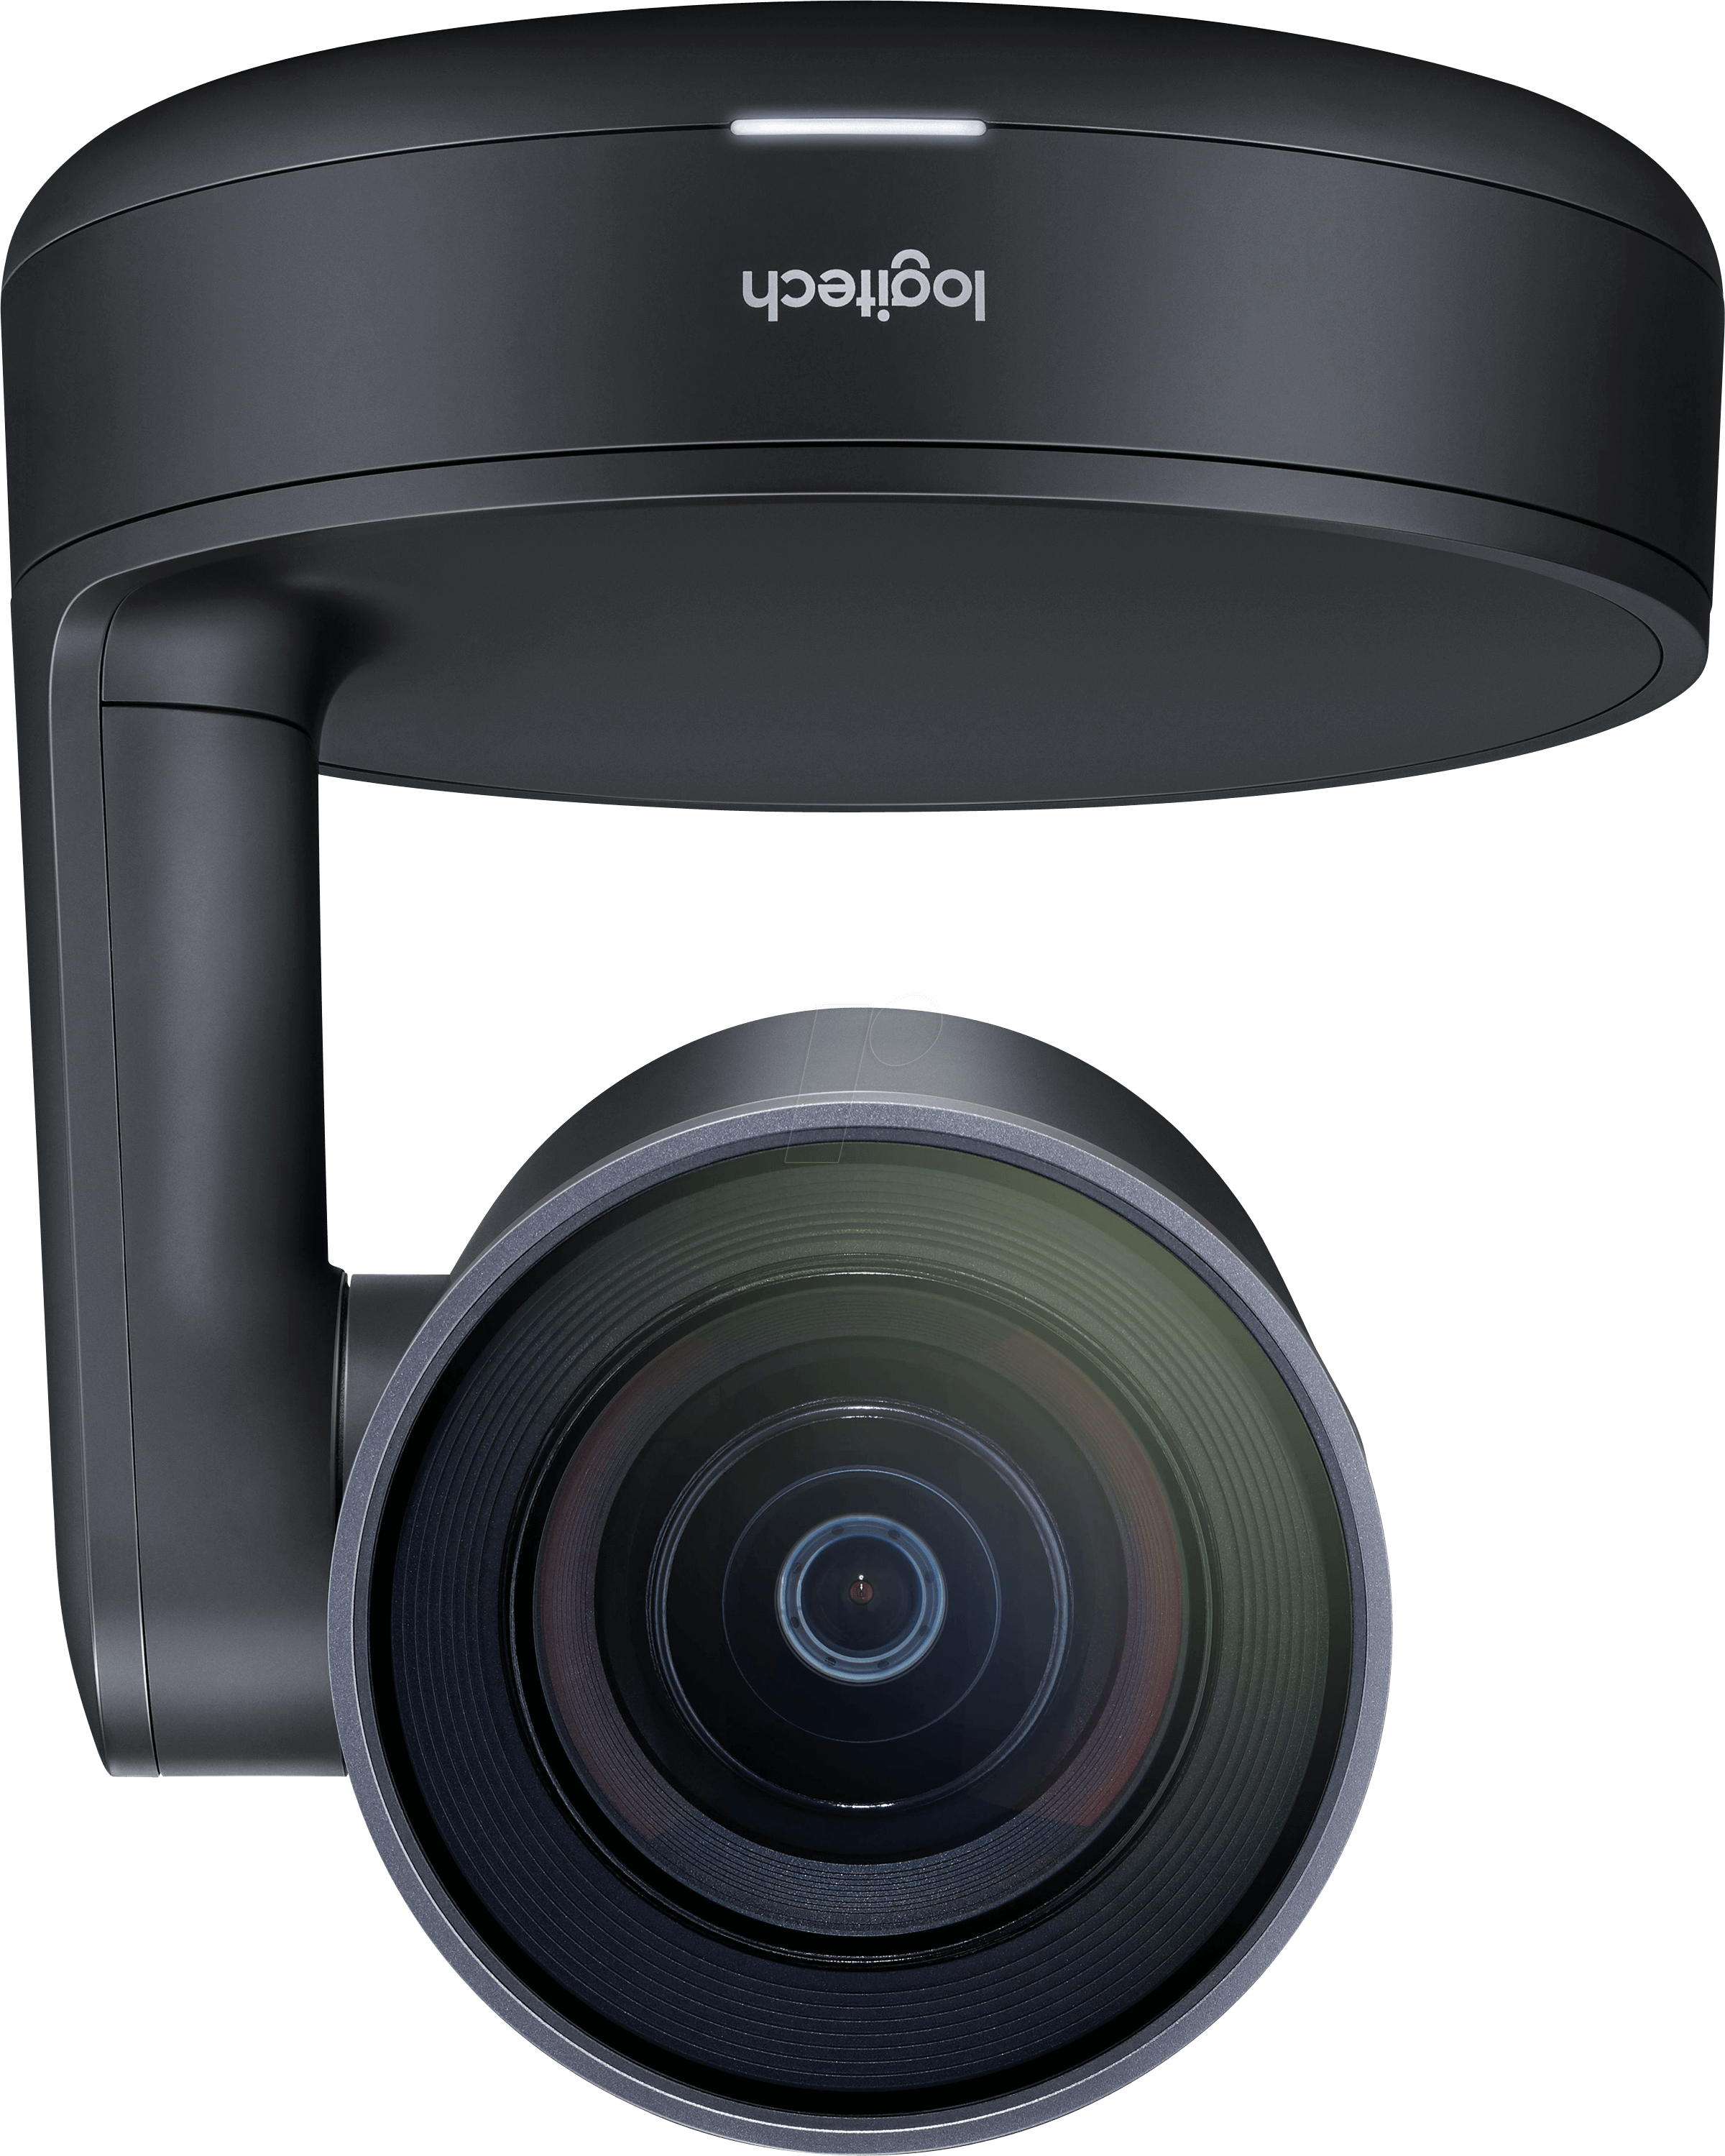 LOGITECH RALLY - Webcam with USB for 4k Video